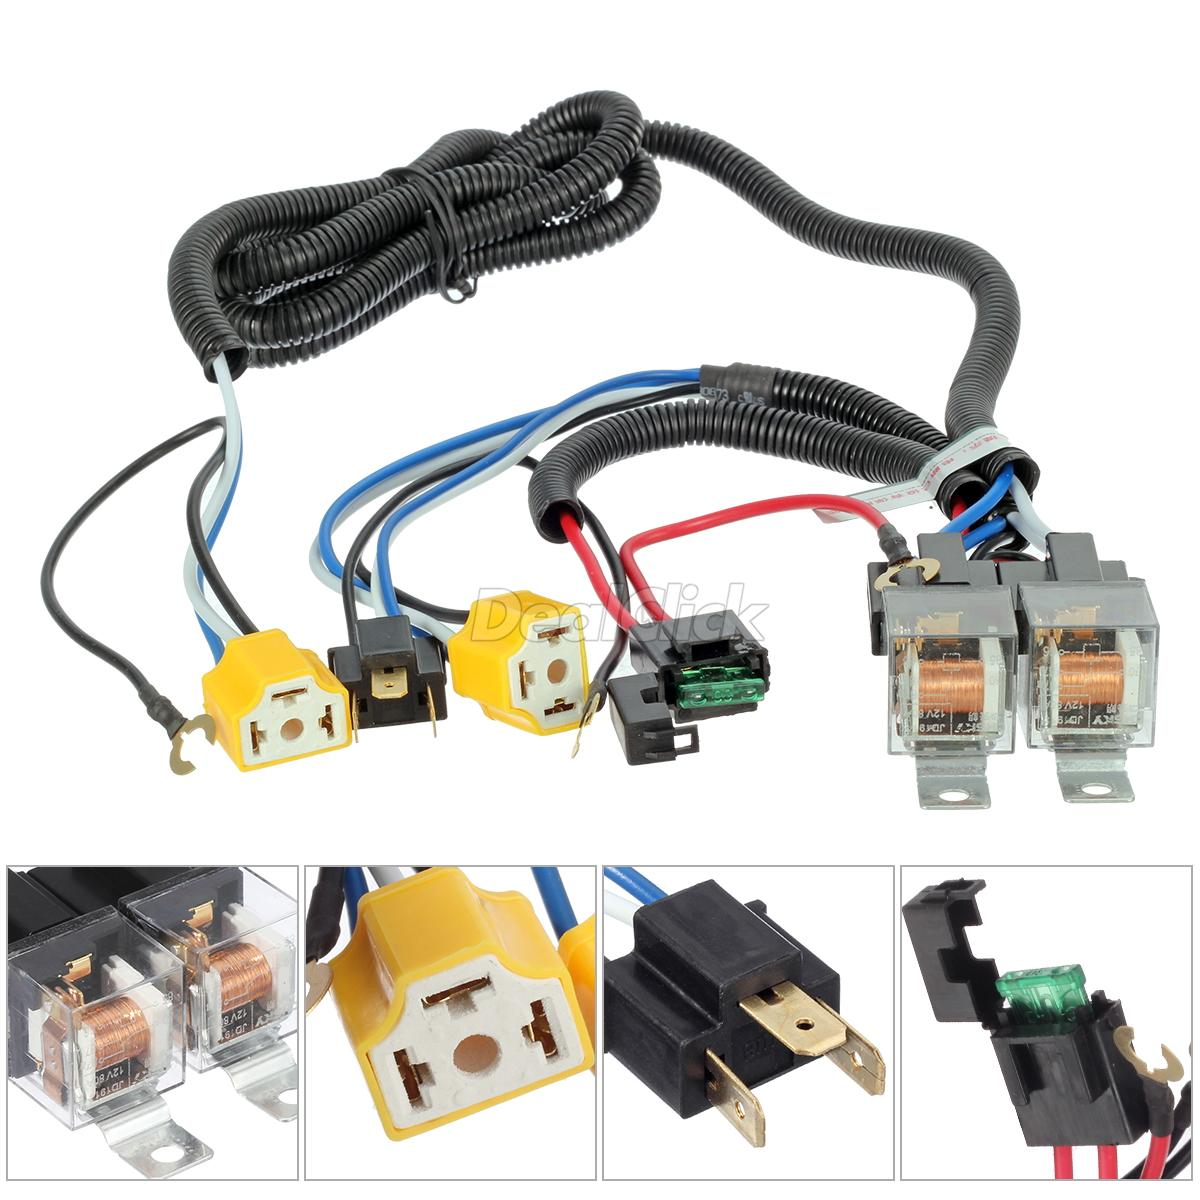 hight resolution of ceramic h4 headlight headlamp h4 light bulb relay wiring harness h4 headlight relay wiring harness 2 headlamp light bulb socket plugs